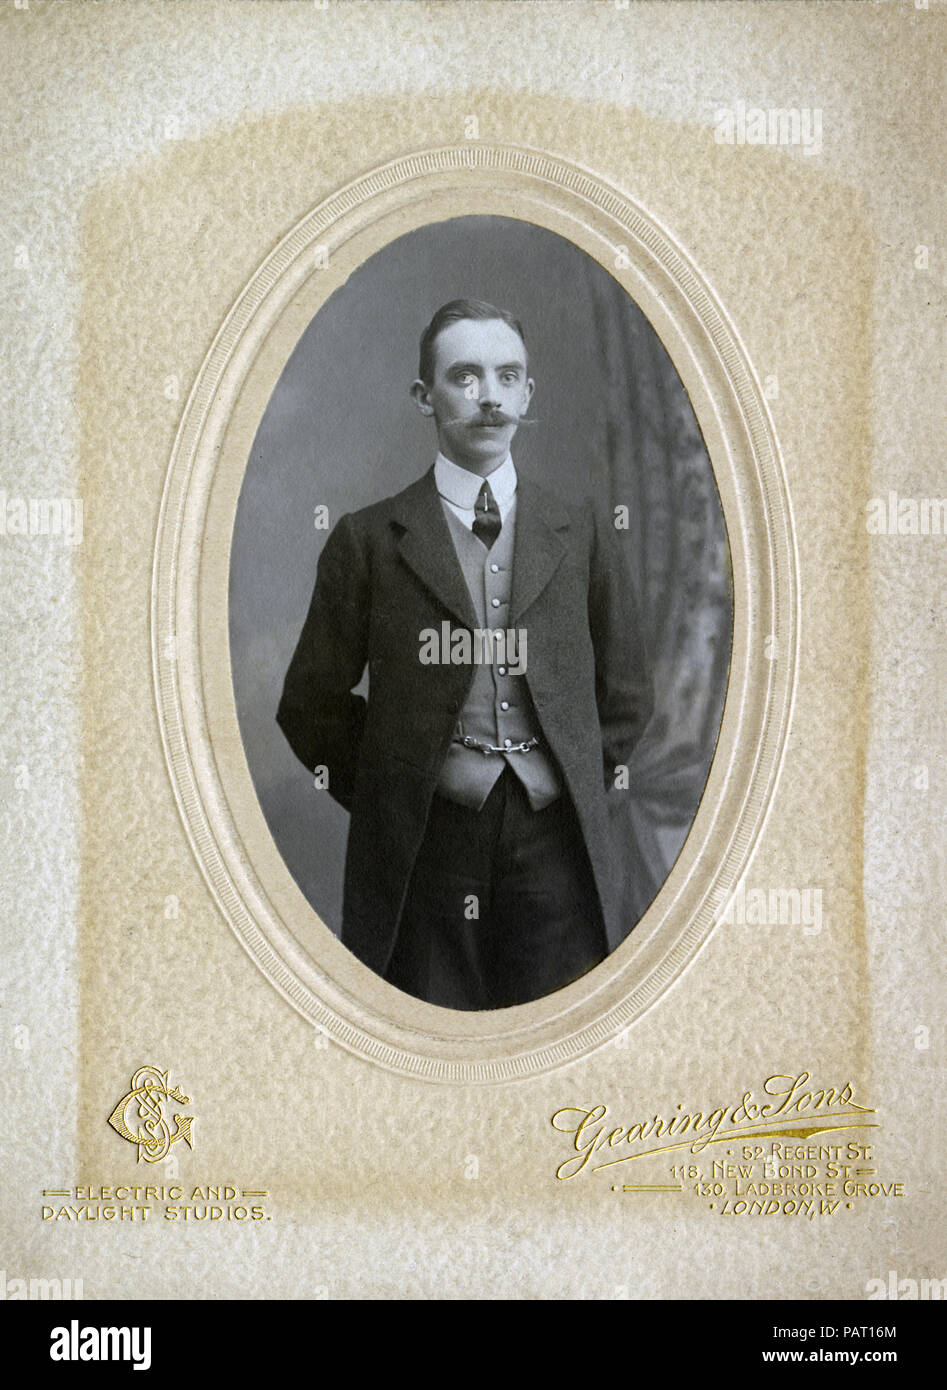 A portrait of a young Victorian or Edwardian man in an old photography studio. - Stock Image